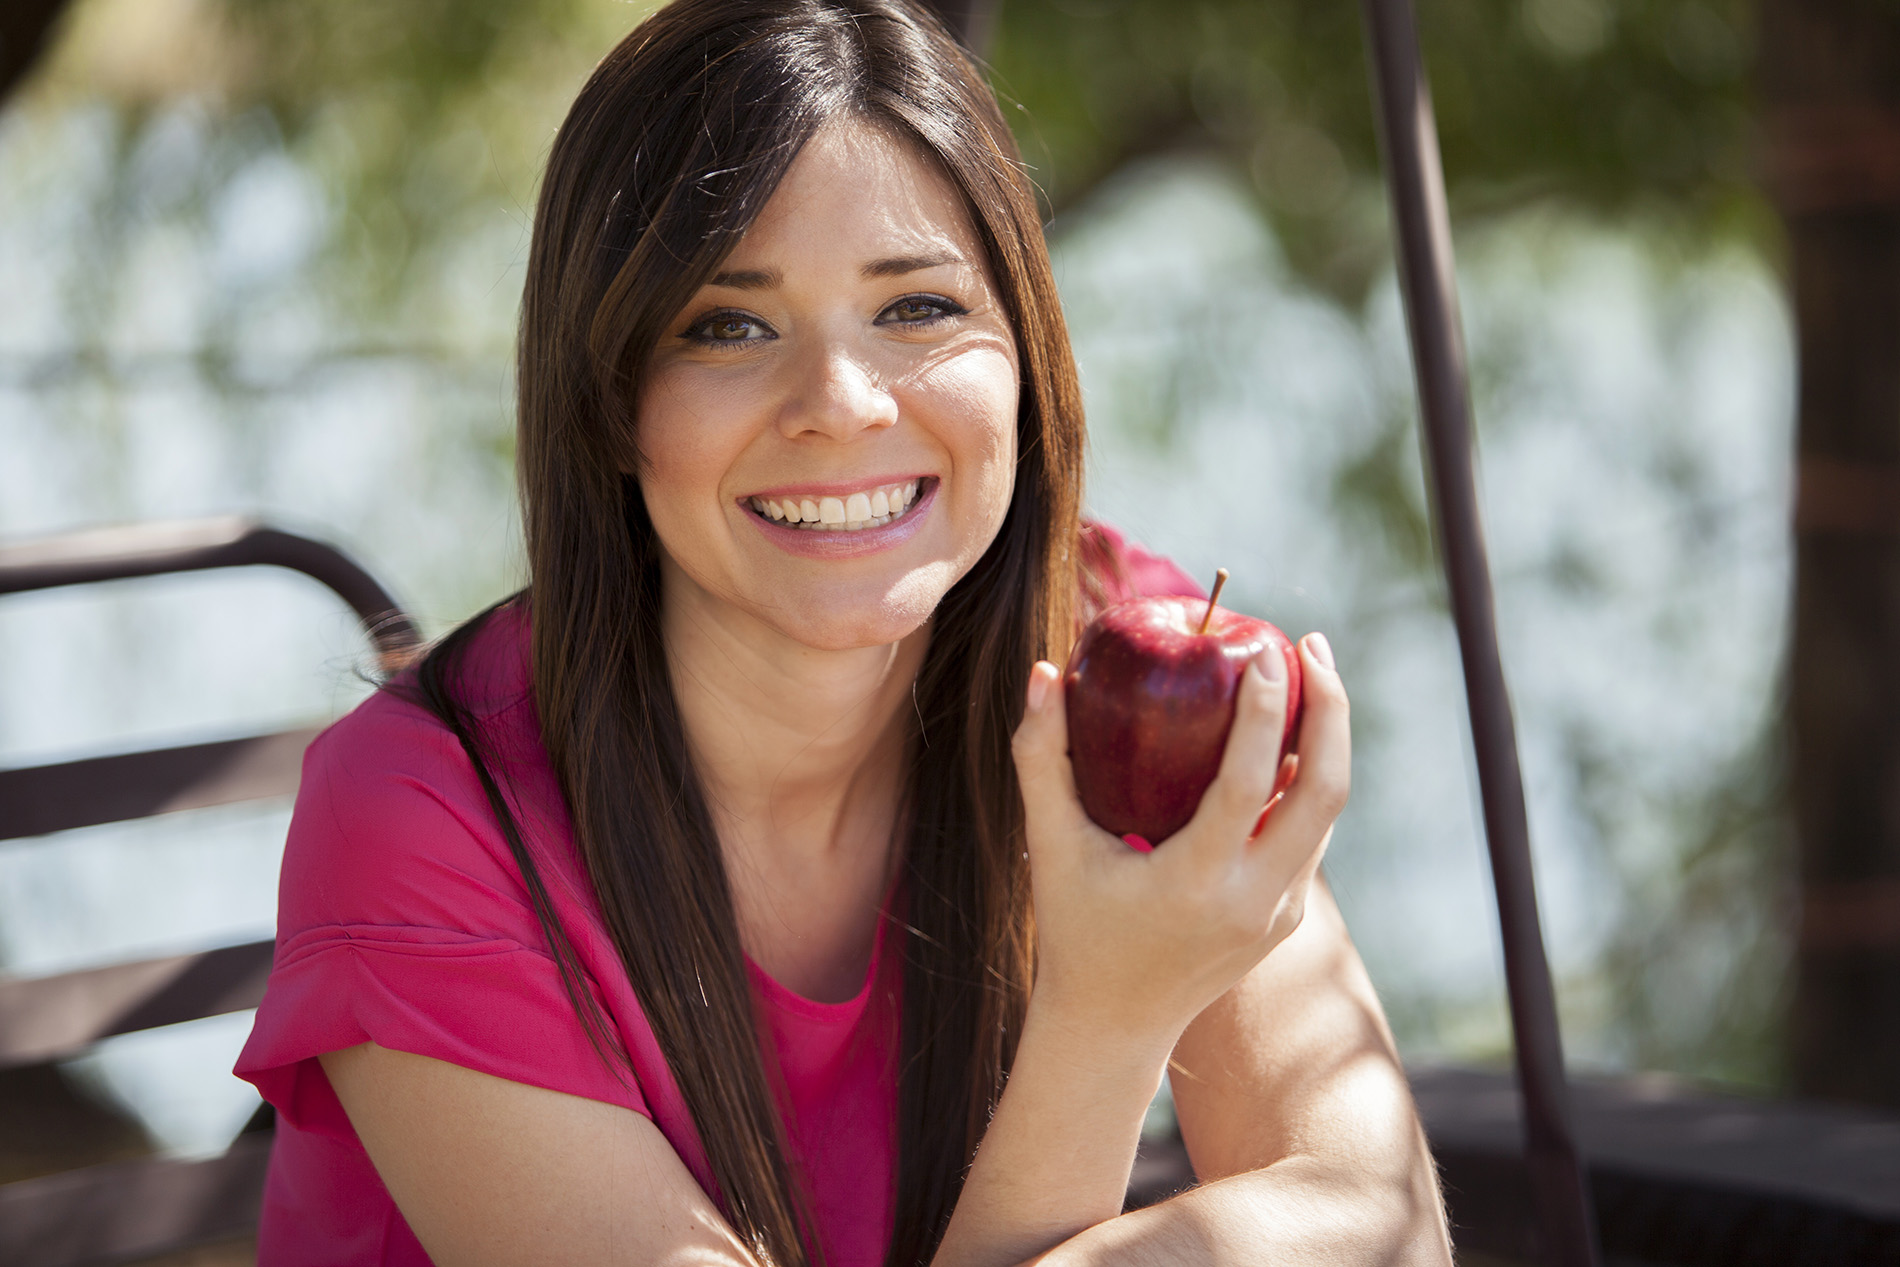 Young brunette woman holding red apple